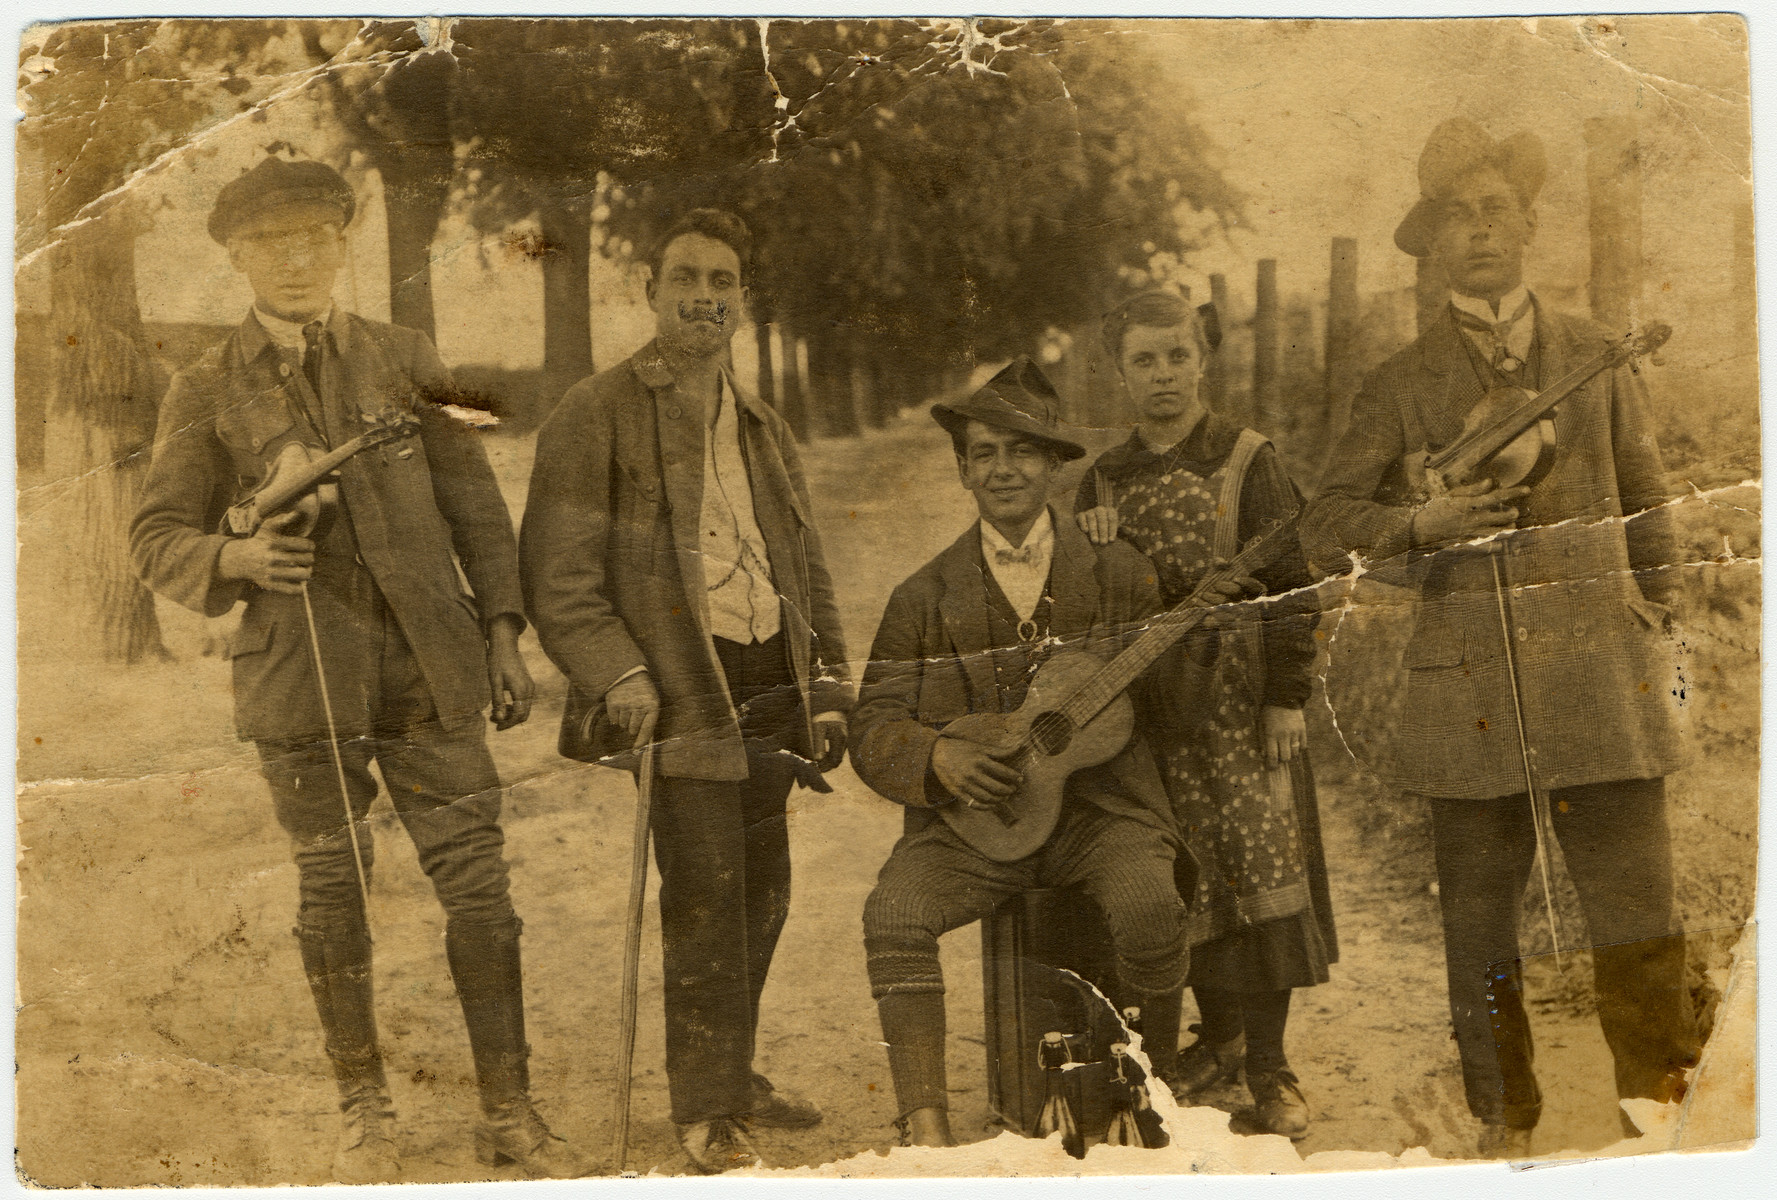 Members of a French-Hungarian Gypsy musical band pose for a photograph with their instruments.    Pictured are members of the donor's family: in the middle, with the cane, is donor's grandfather, Johann Winterstein.  Surrounding him are his cousins.  The band was mostly performing in France.